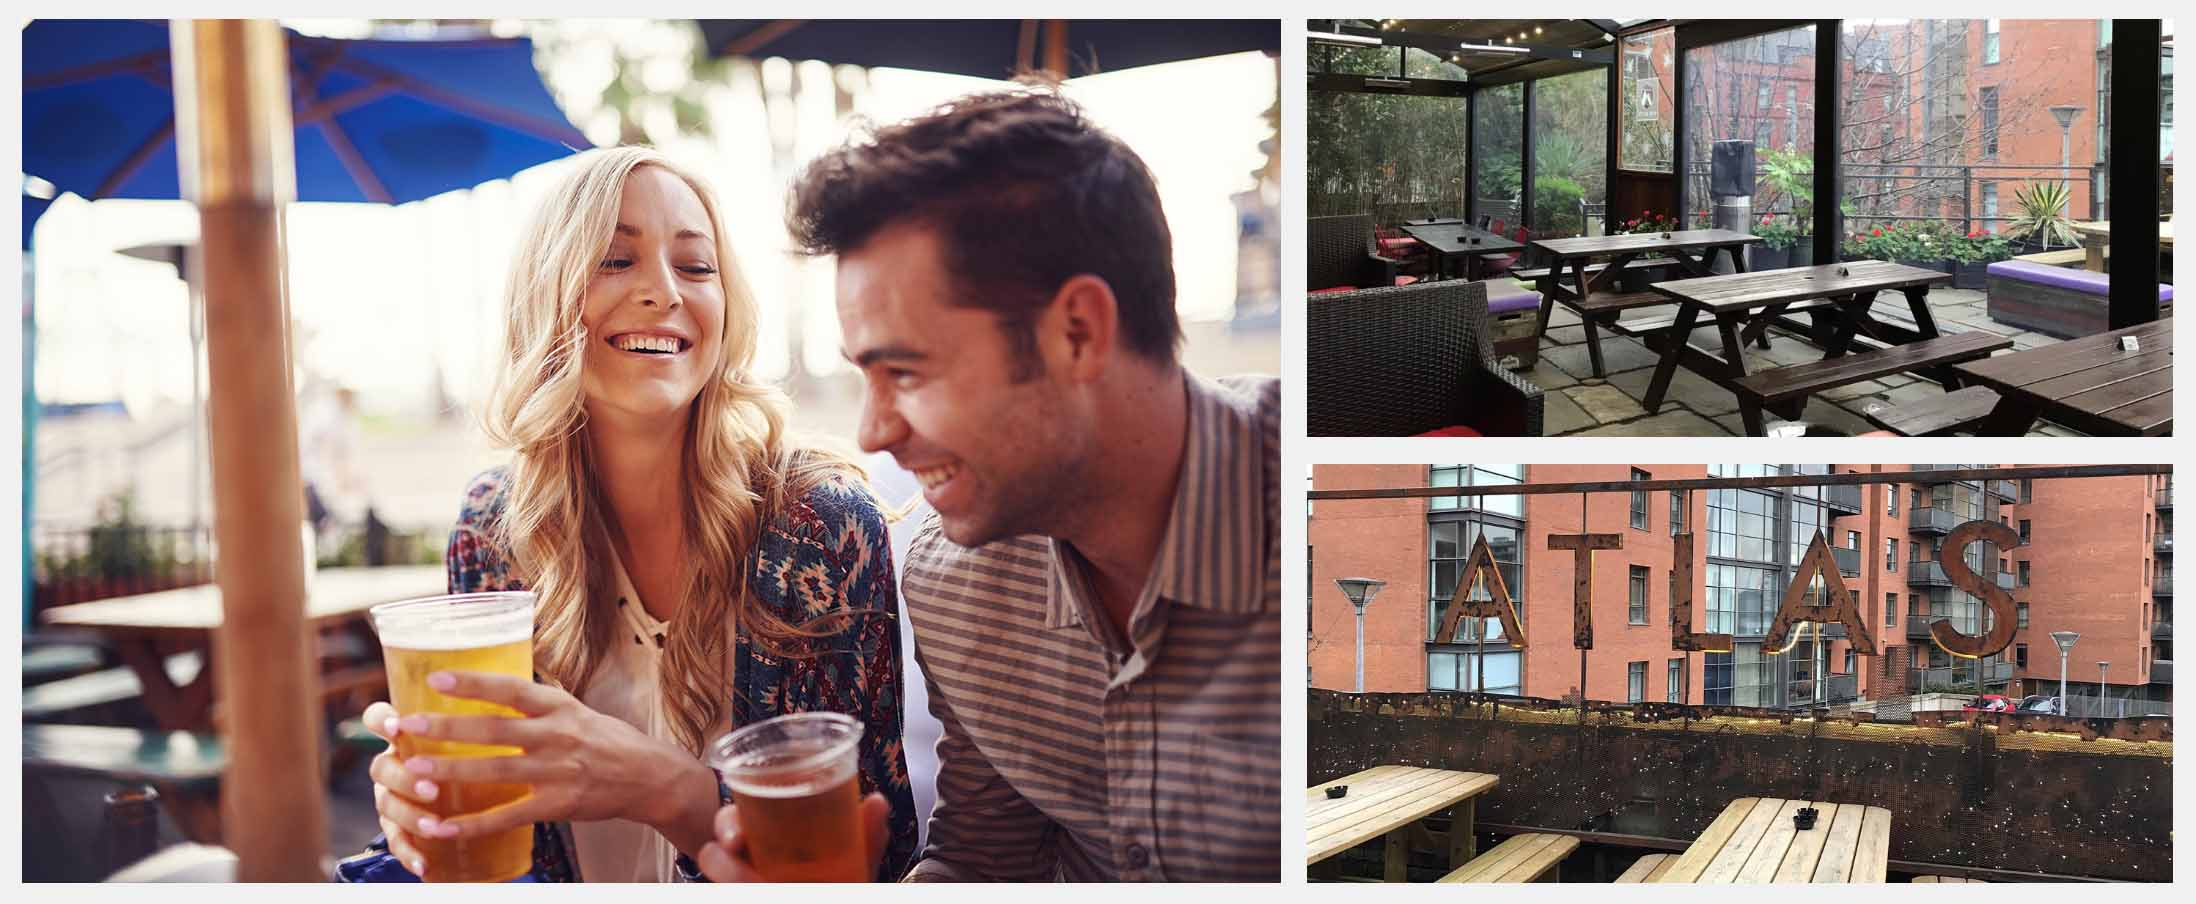 Best Beer Gardens in Manchester - Atlas Bar